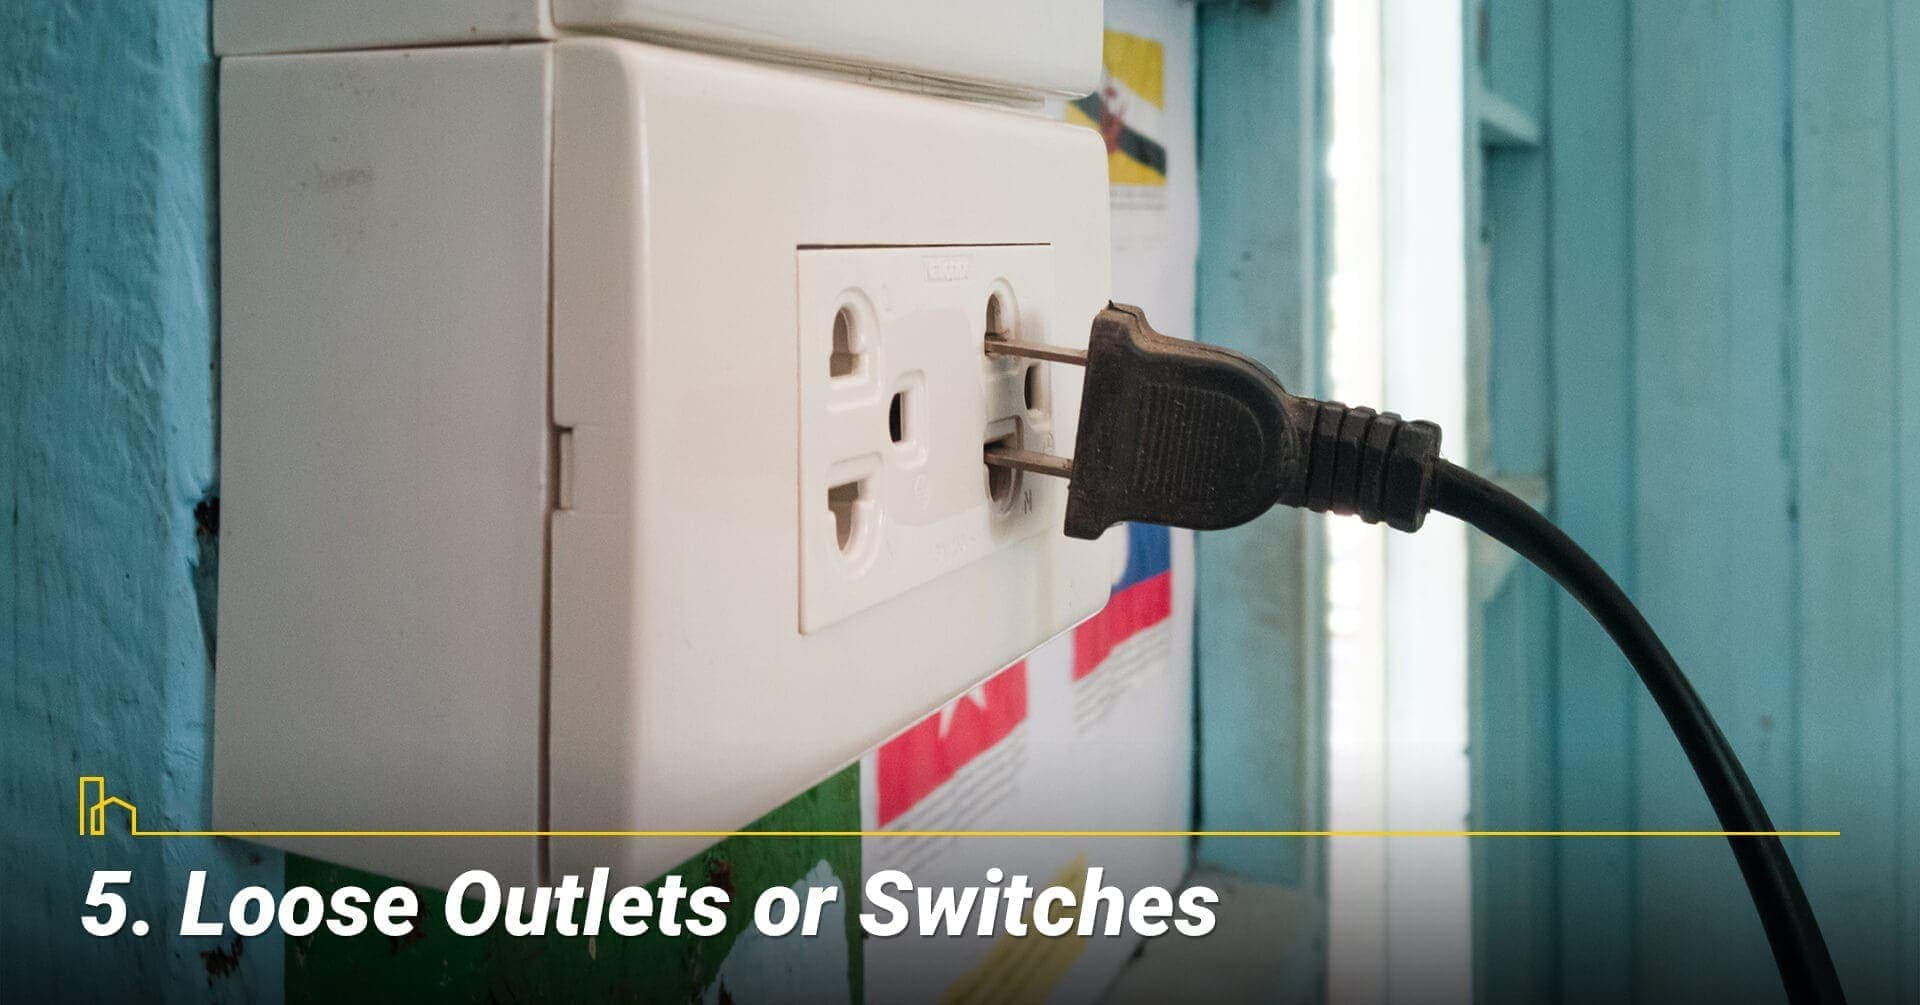 Loose Outlets or Switches